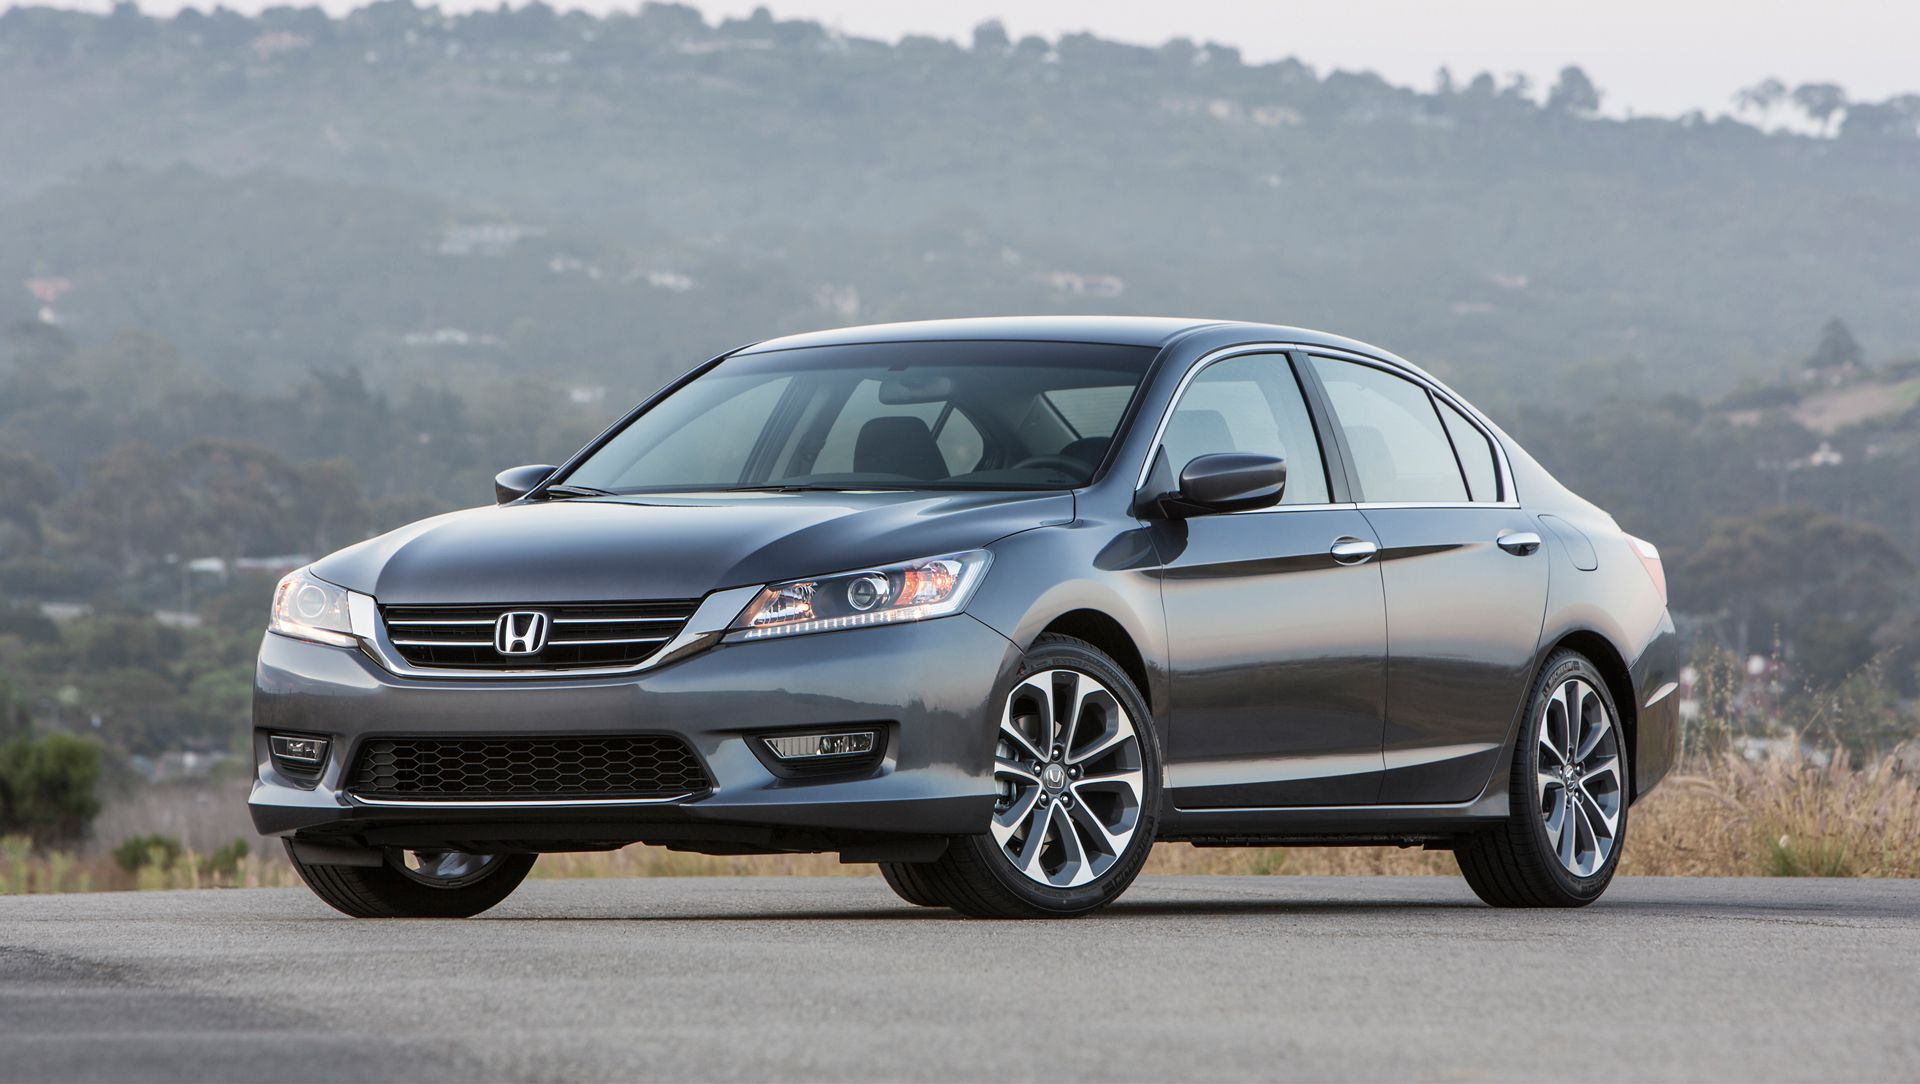 2013 Honda Accord Wins Cars.com/USA Today/ Amazing Pictures